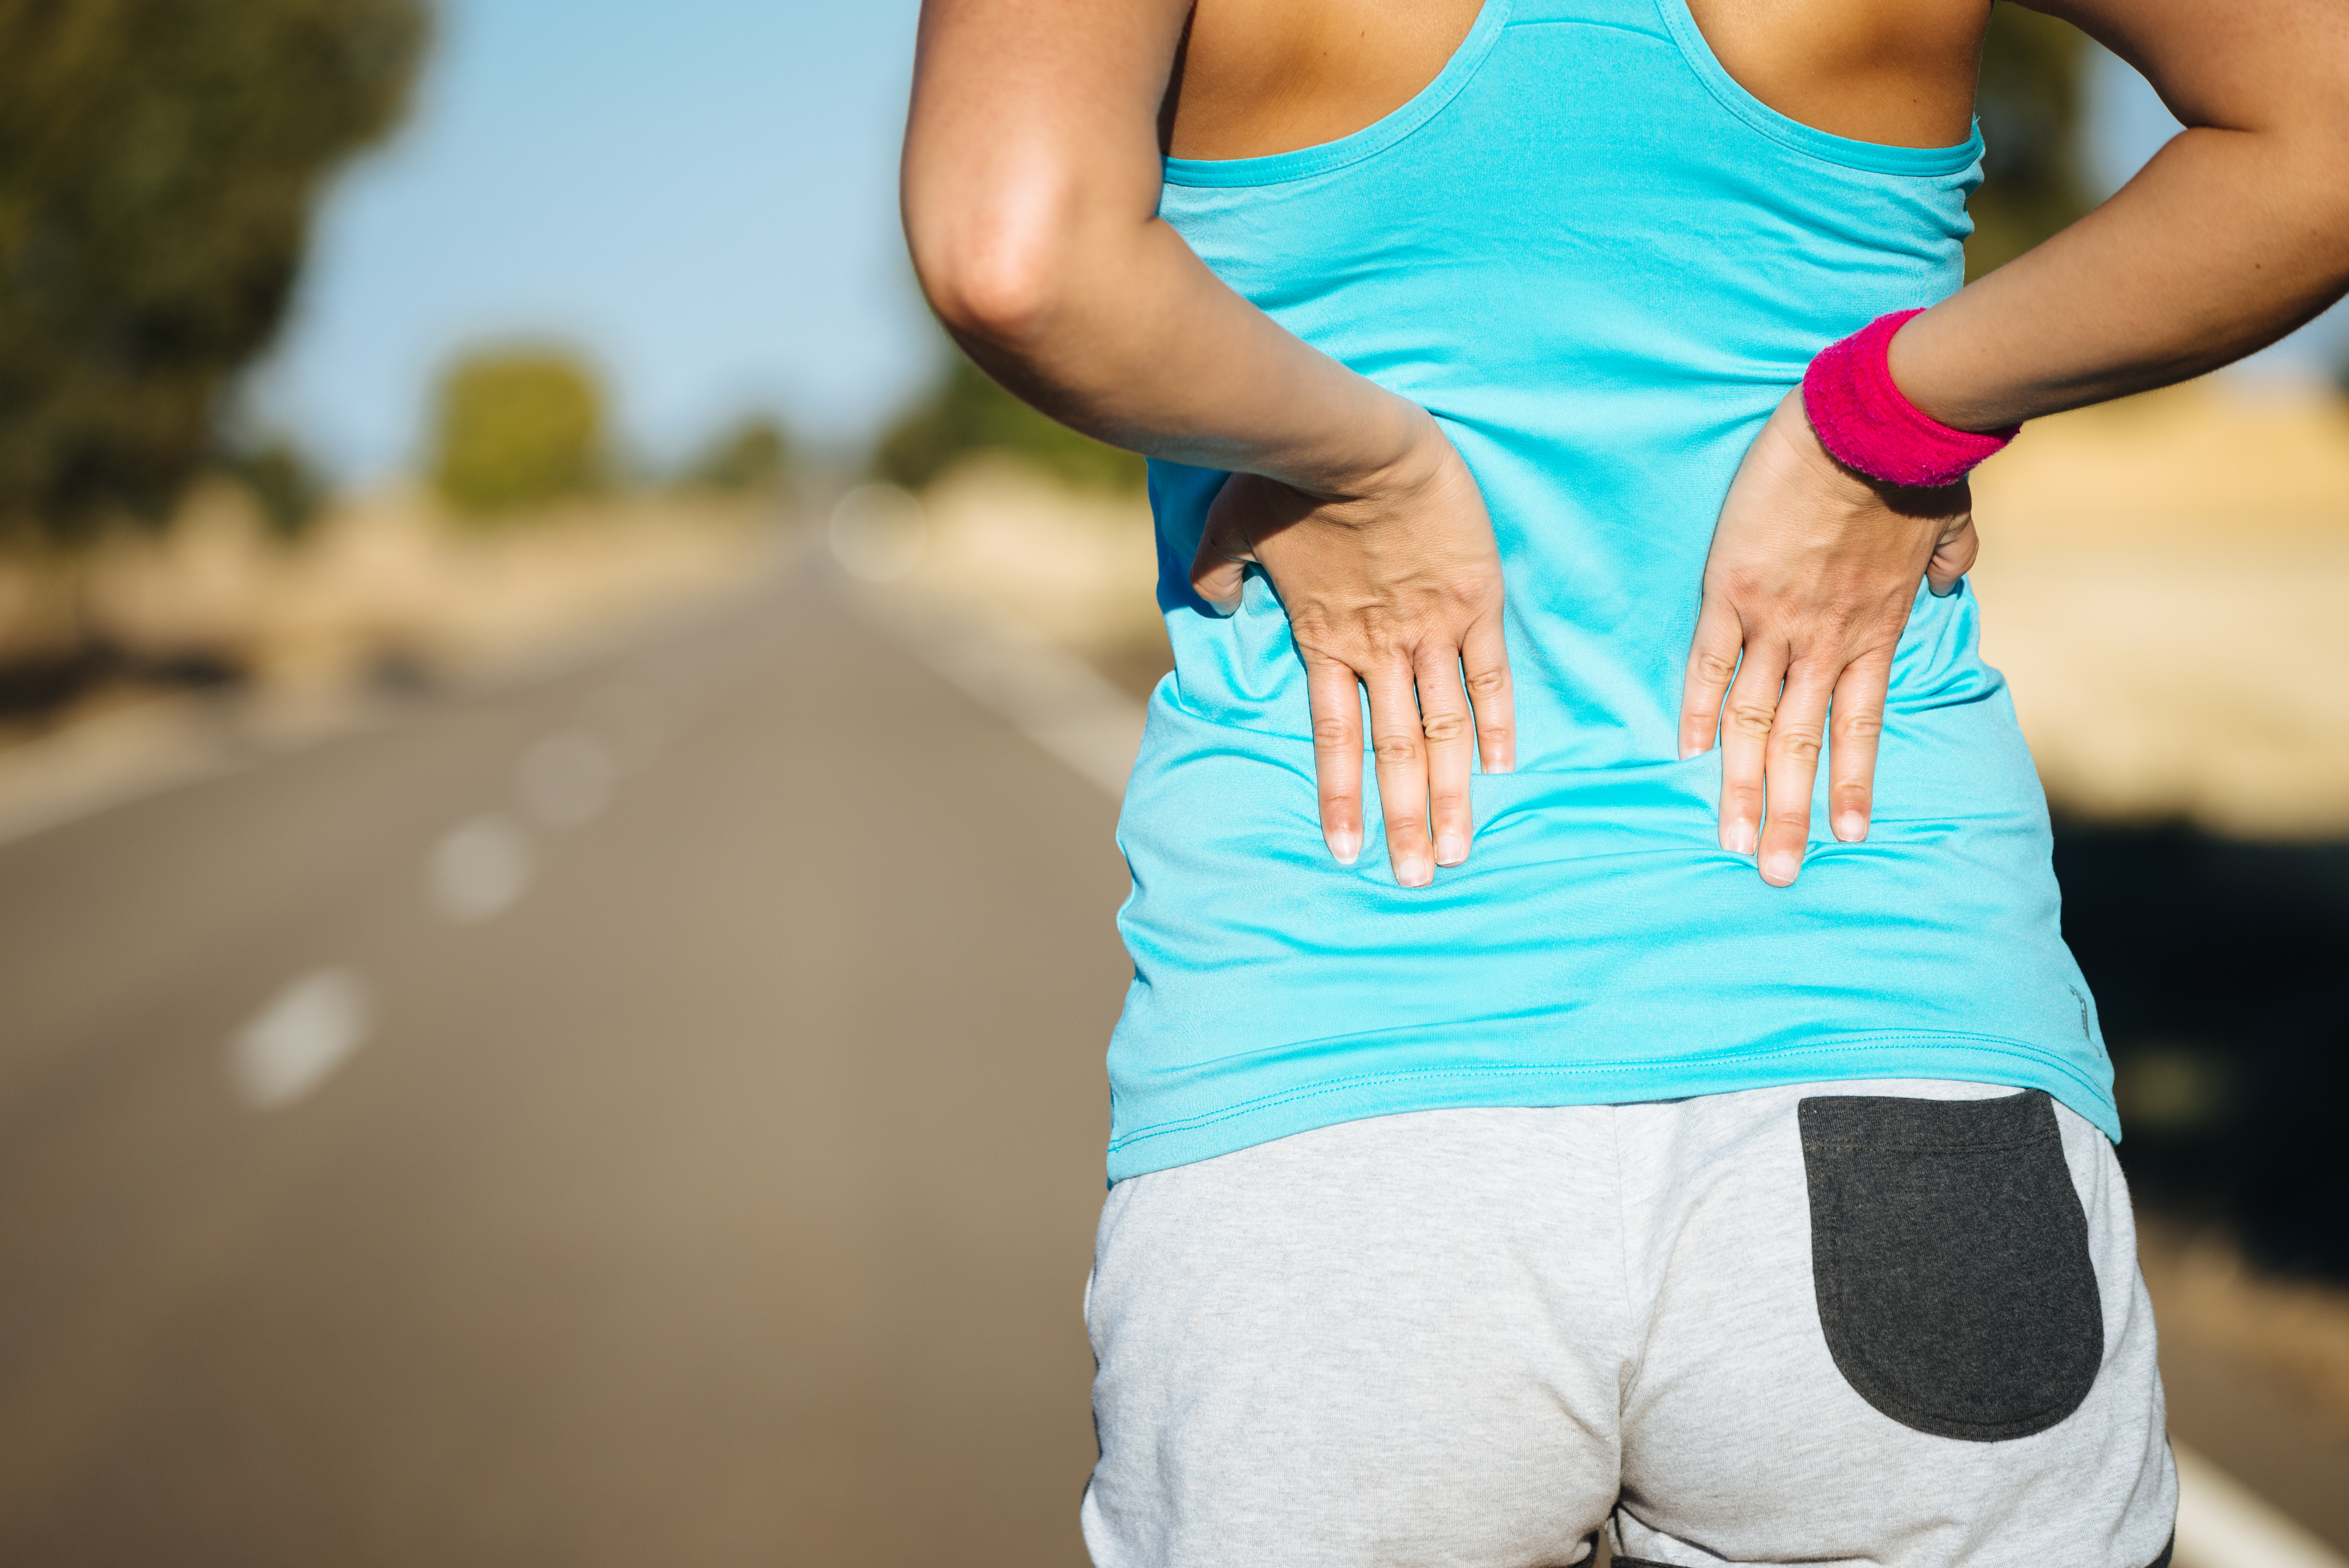 woman lower back pain BodyViva ways to speed up recovery outside the clinic